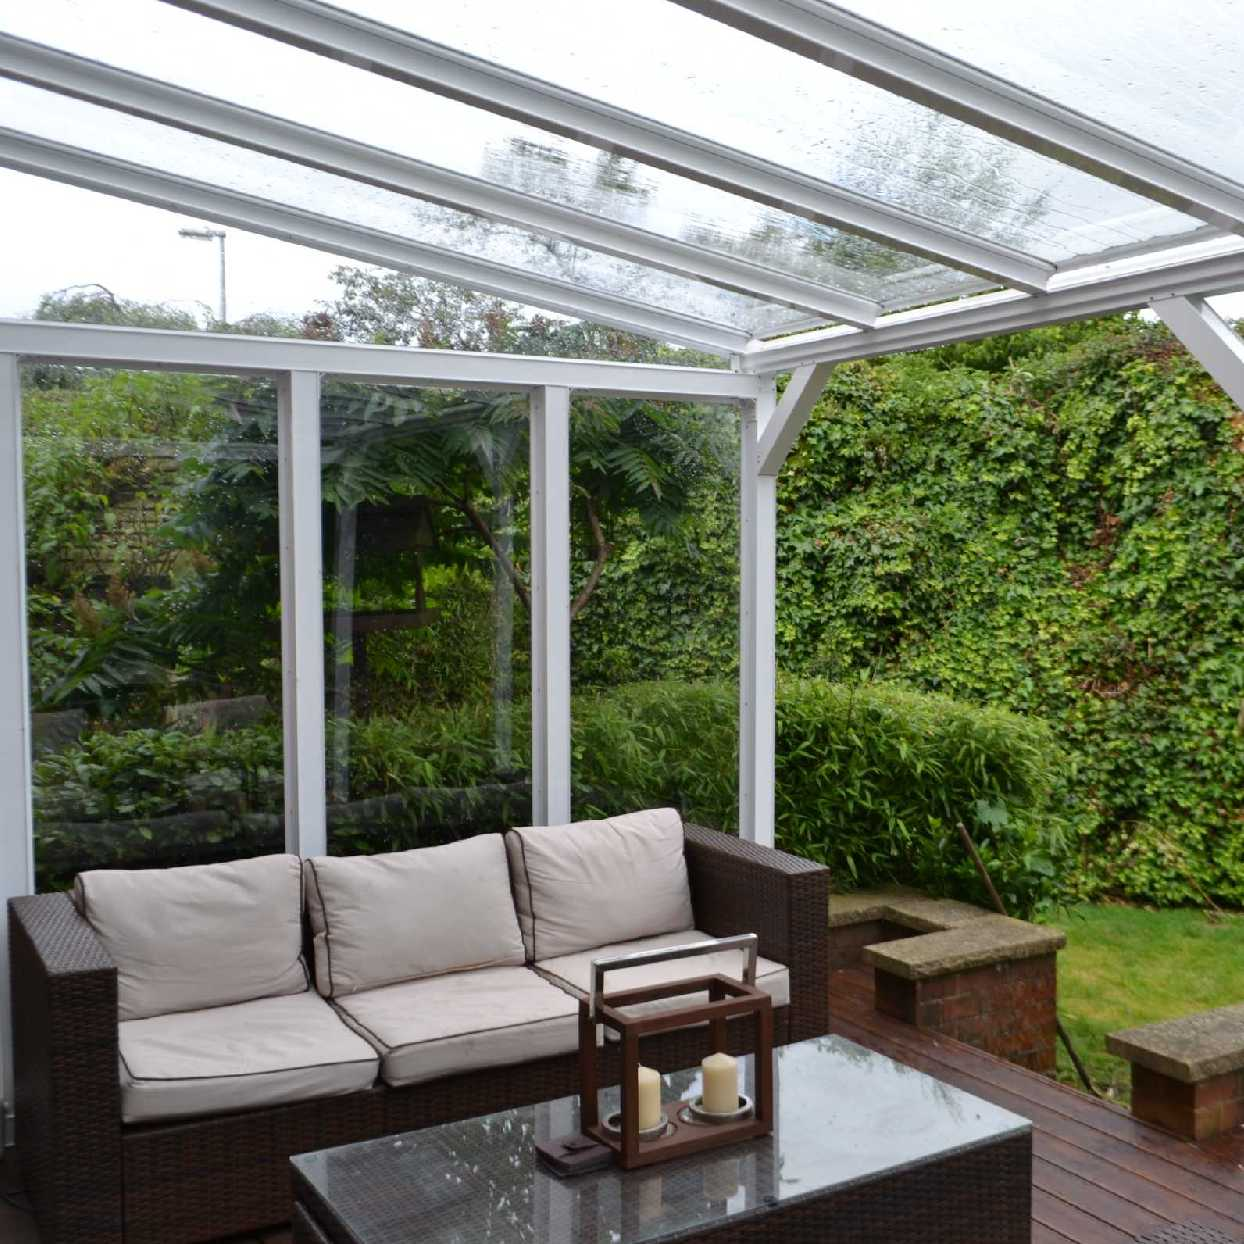 Omega Smart White Lean-To Canopy UNGLAZED for 6mm Glazing - 8.4m (W) x 1.5m (P), (4) Supporting Posts